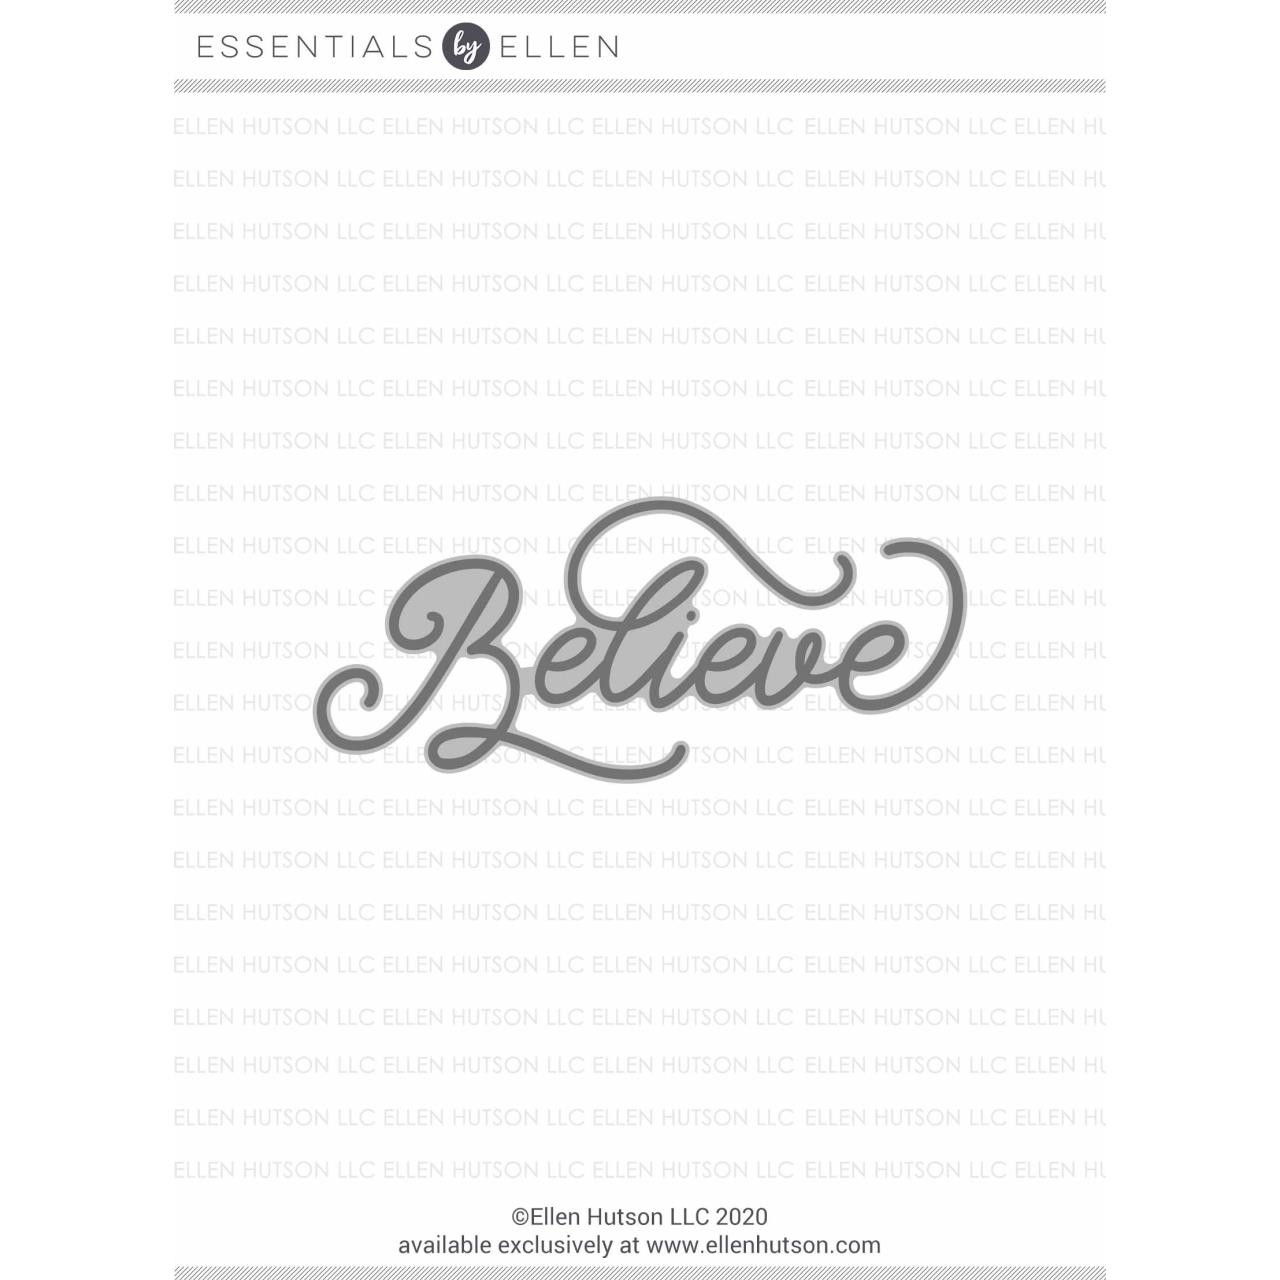 Believe by Julie Ebersole, Essentials by Ellen Hot Foil Stamps -